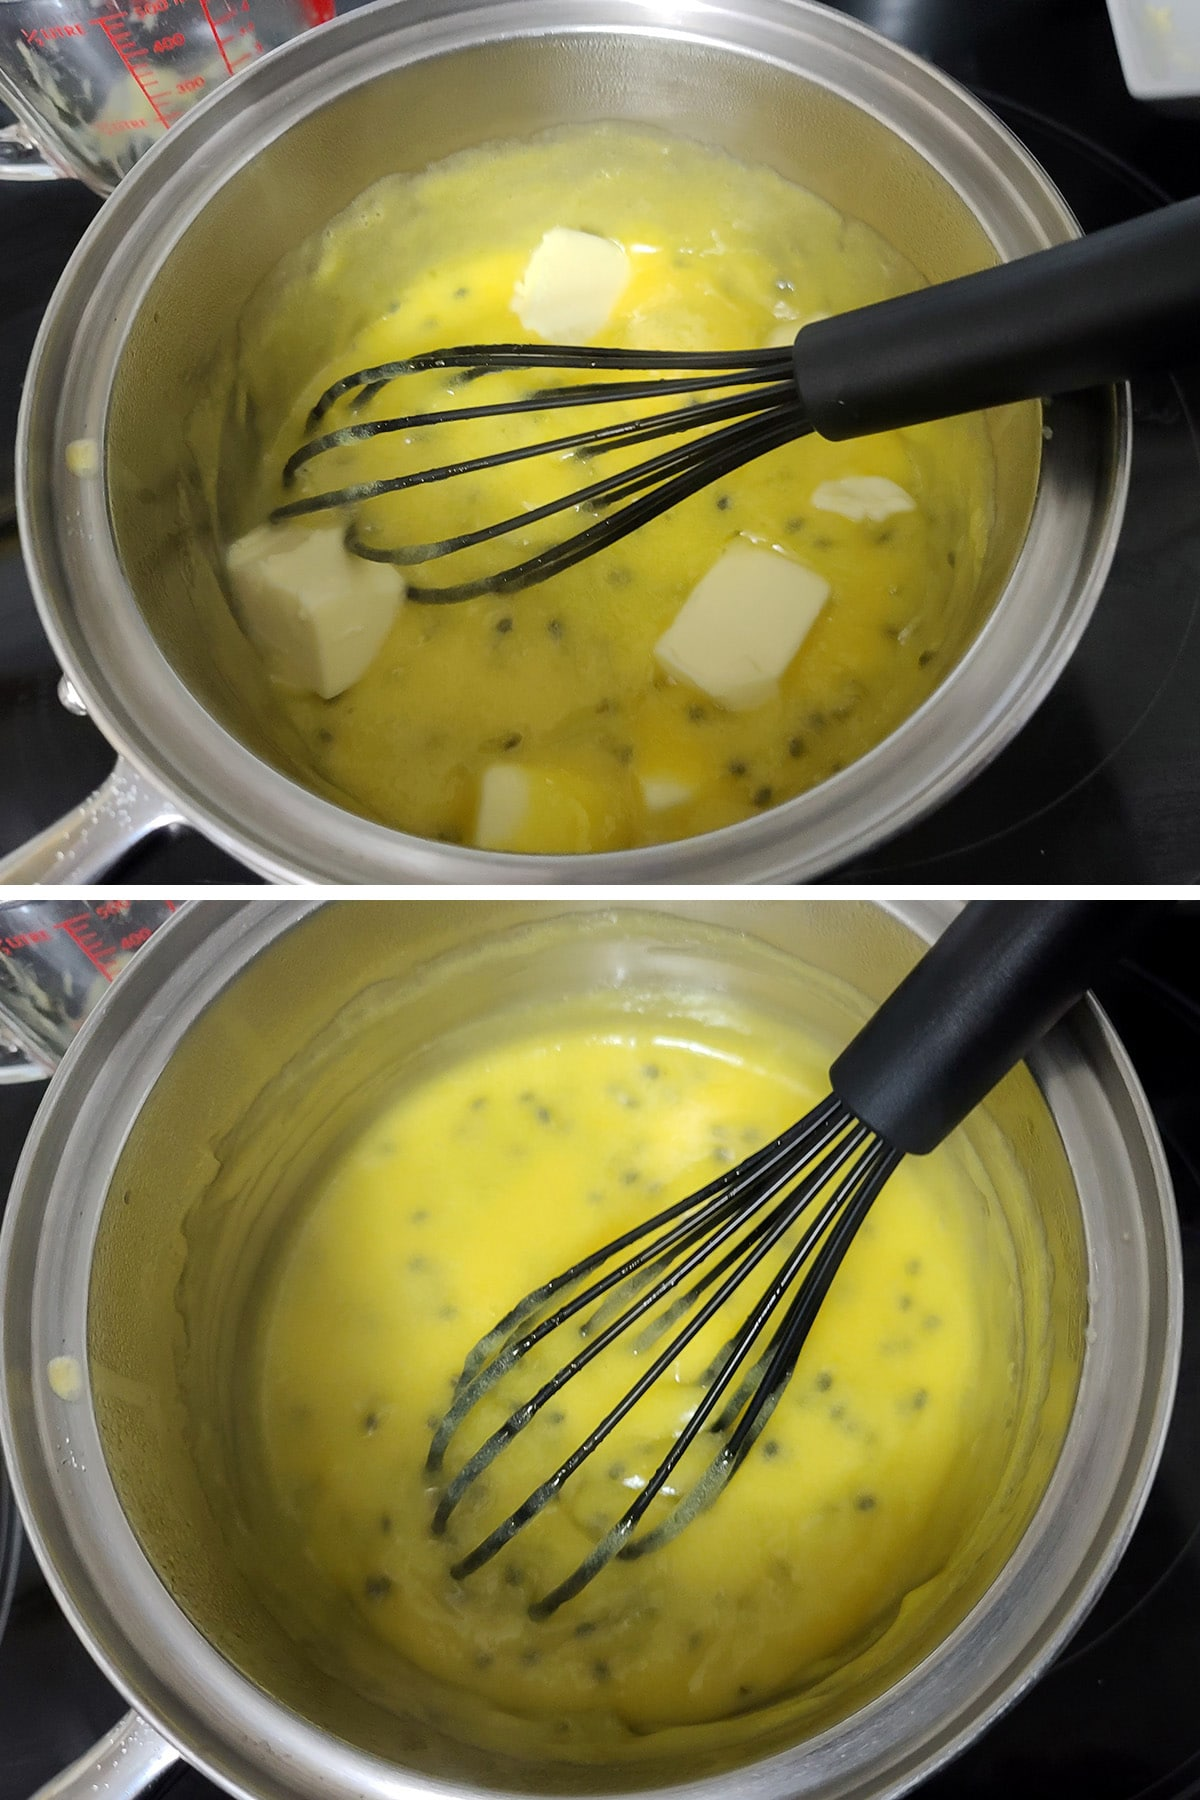 Butter being whisked into the hot curd.